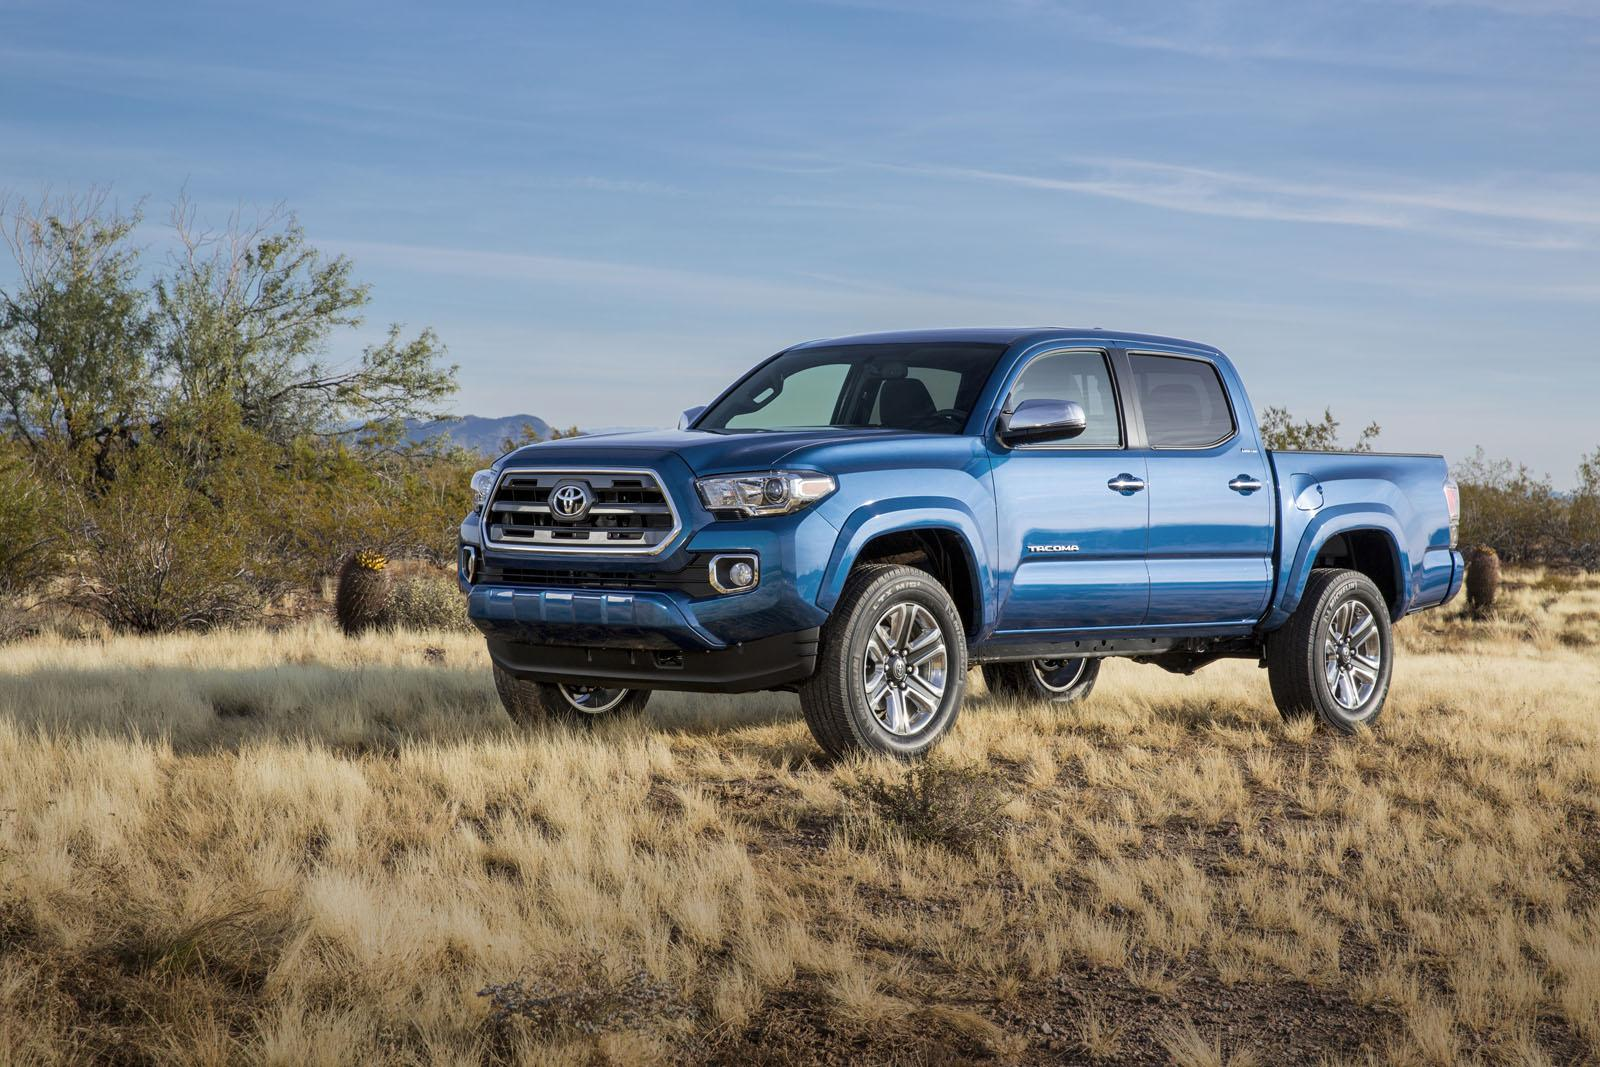 2016 Toyota Tacoma Might Be The Ruggedest And Meanest New Mid Size Truck Of The Year (video)